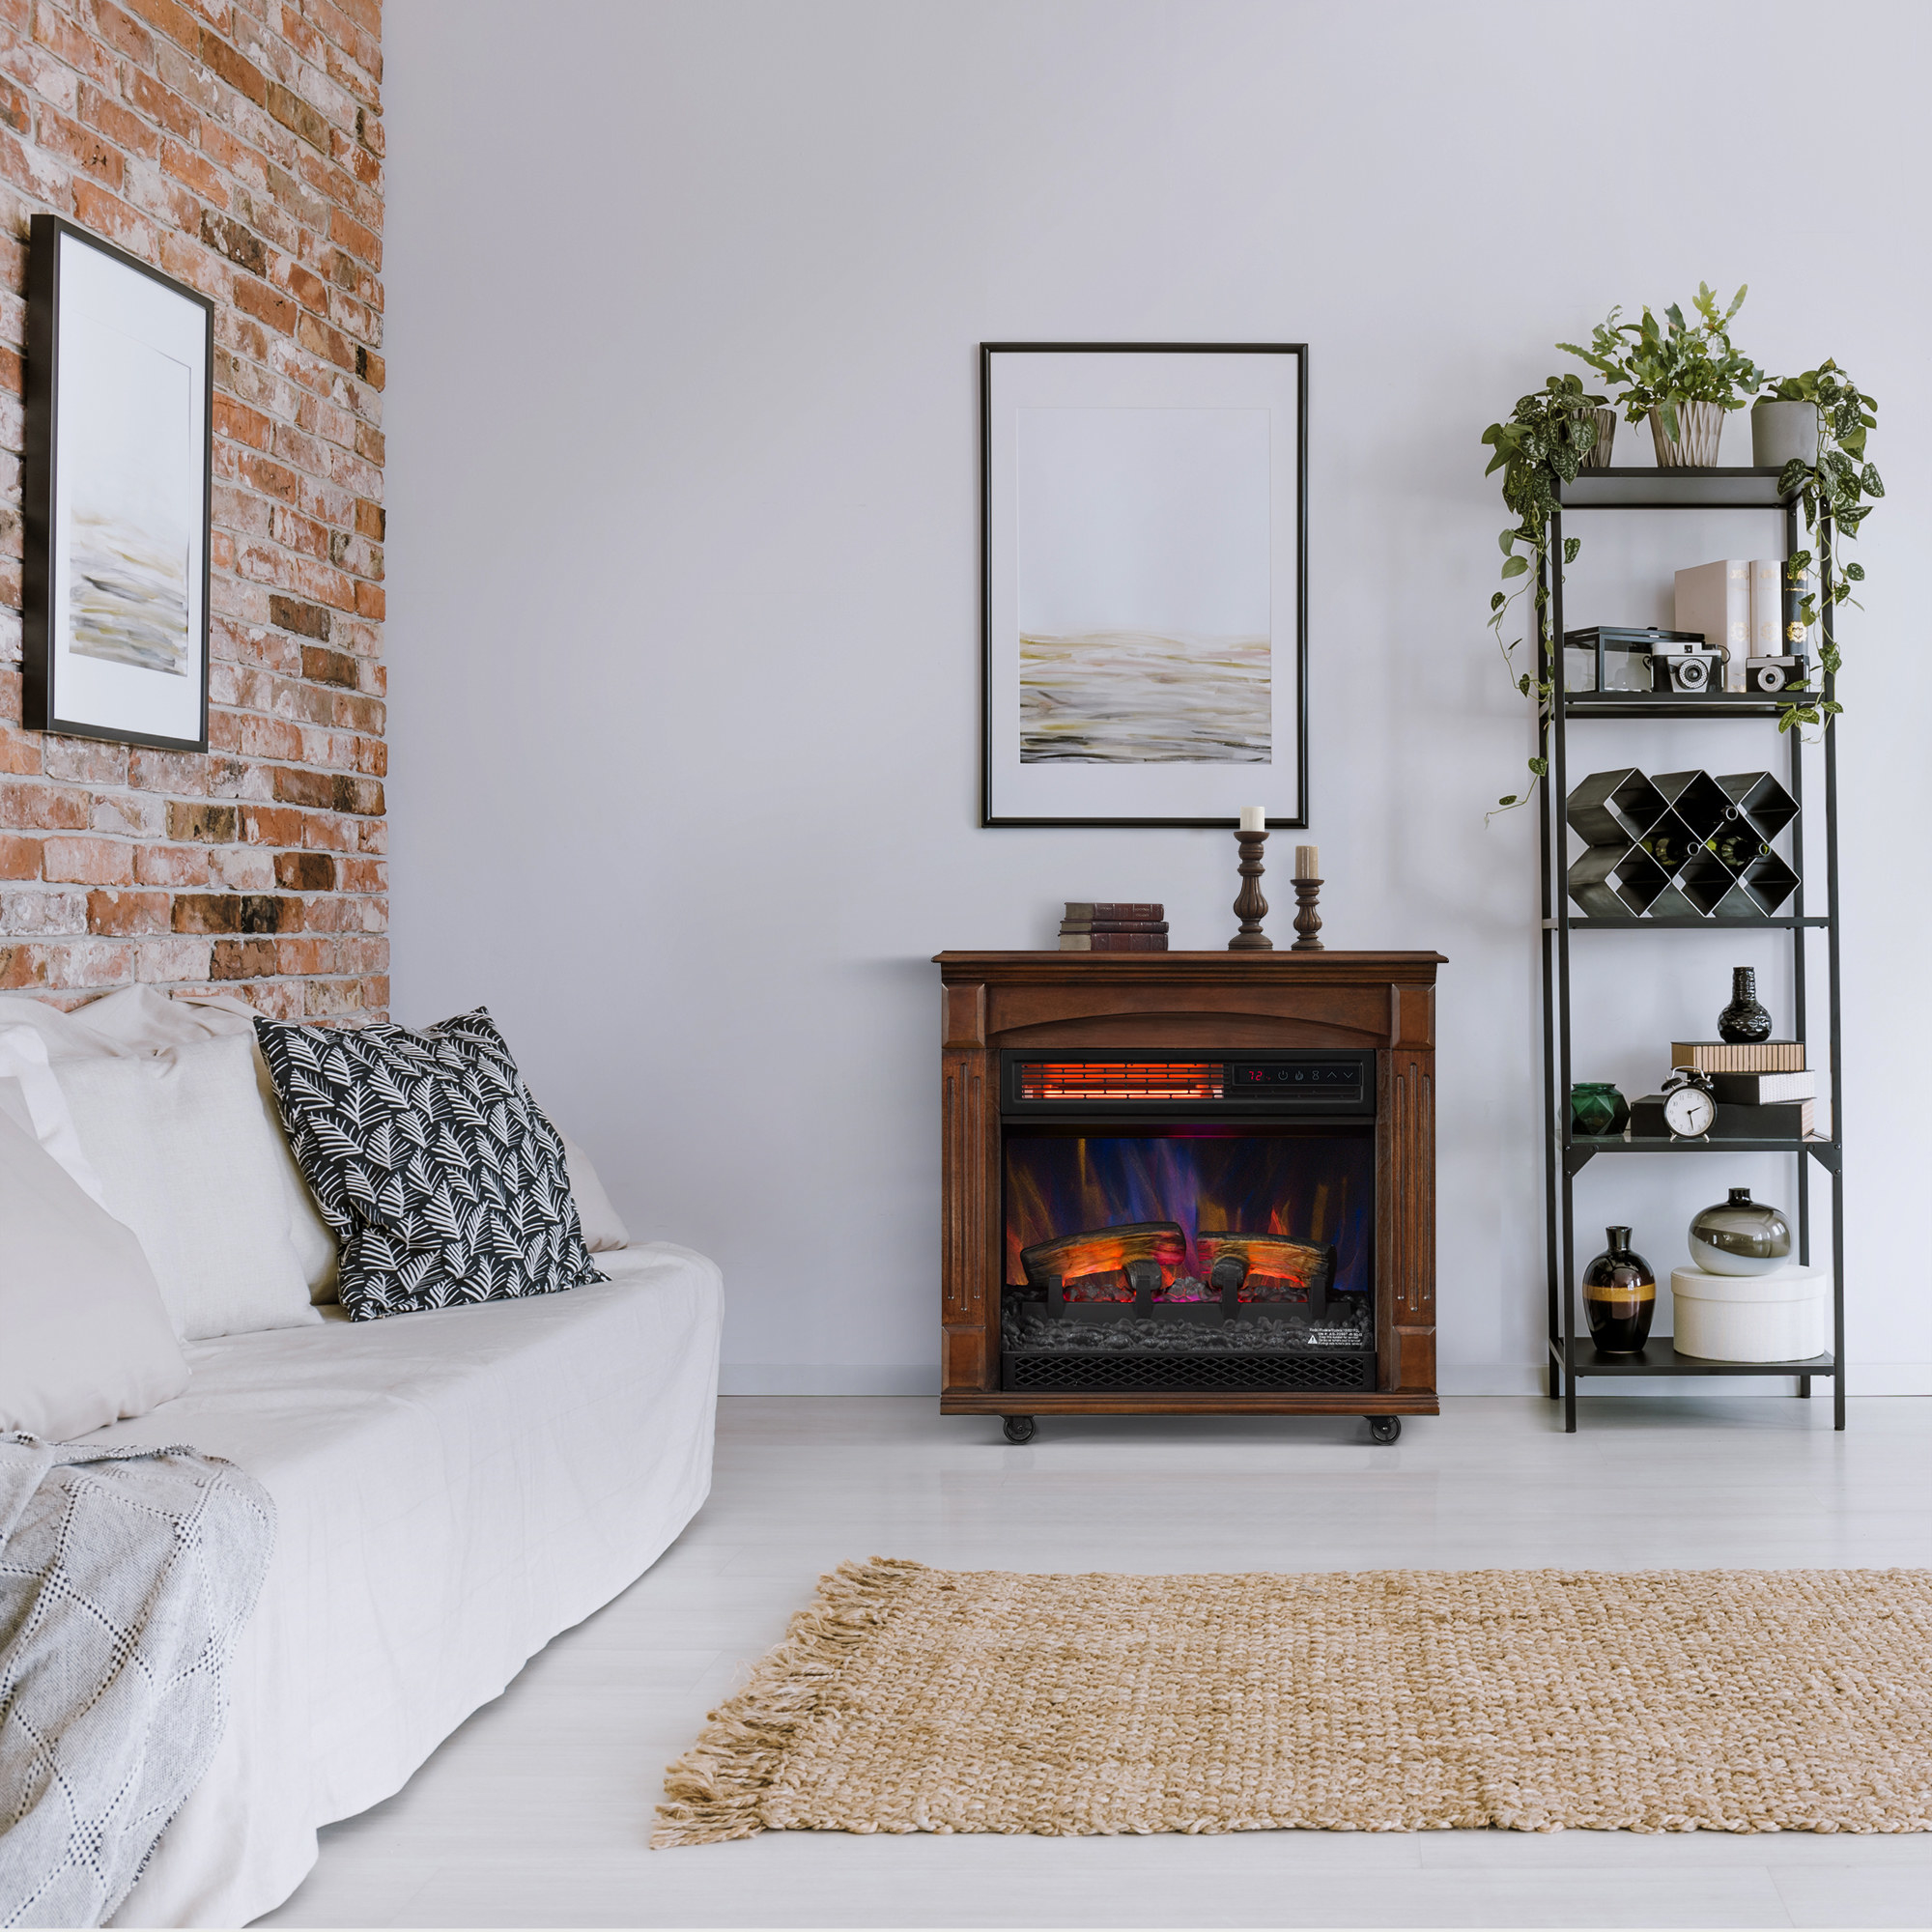 The infrared fireplace in a living space